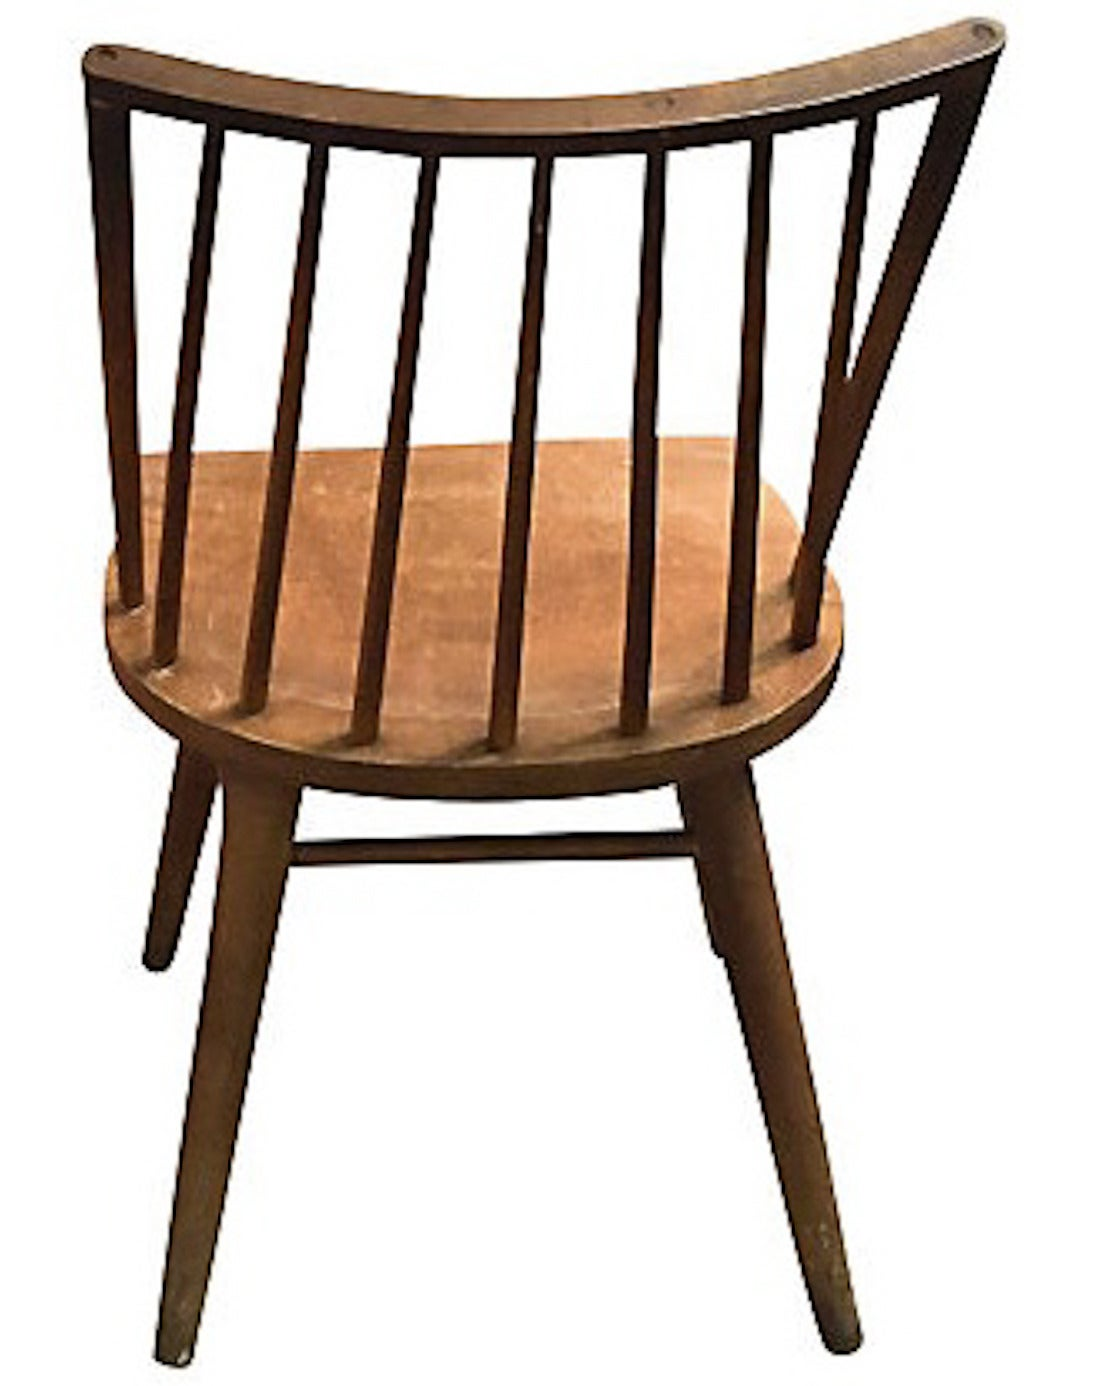 conant ball chair standard height set of four mid century russel wright chairs